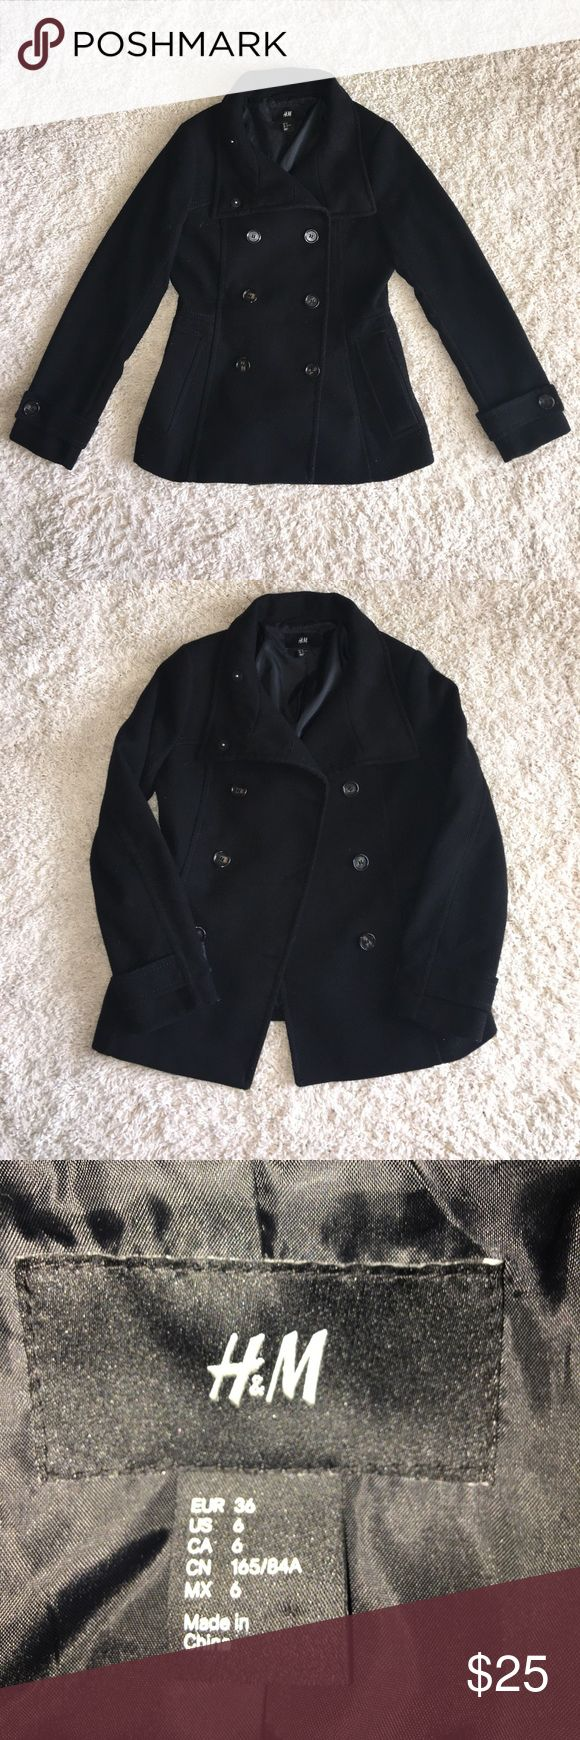 H&M Black Pea Coat Used and in good condition!  Very mild pilling. loveeeee this coat, but I have 50 coats!! Lots of life left! 😊 H&M Jackets & Coats Pea Coats